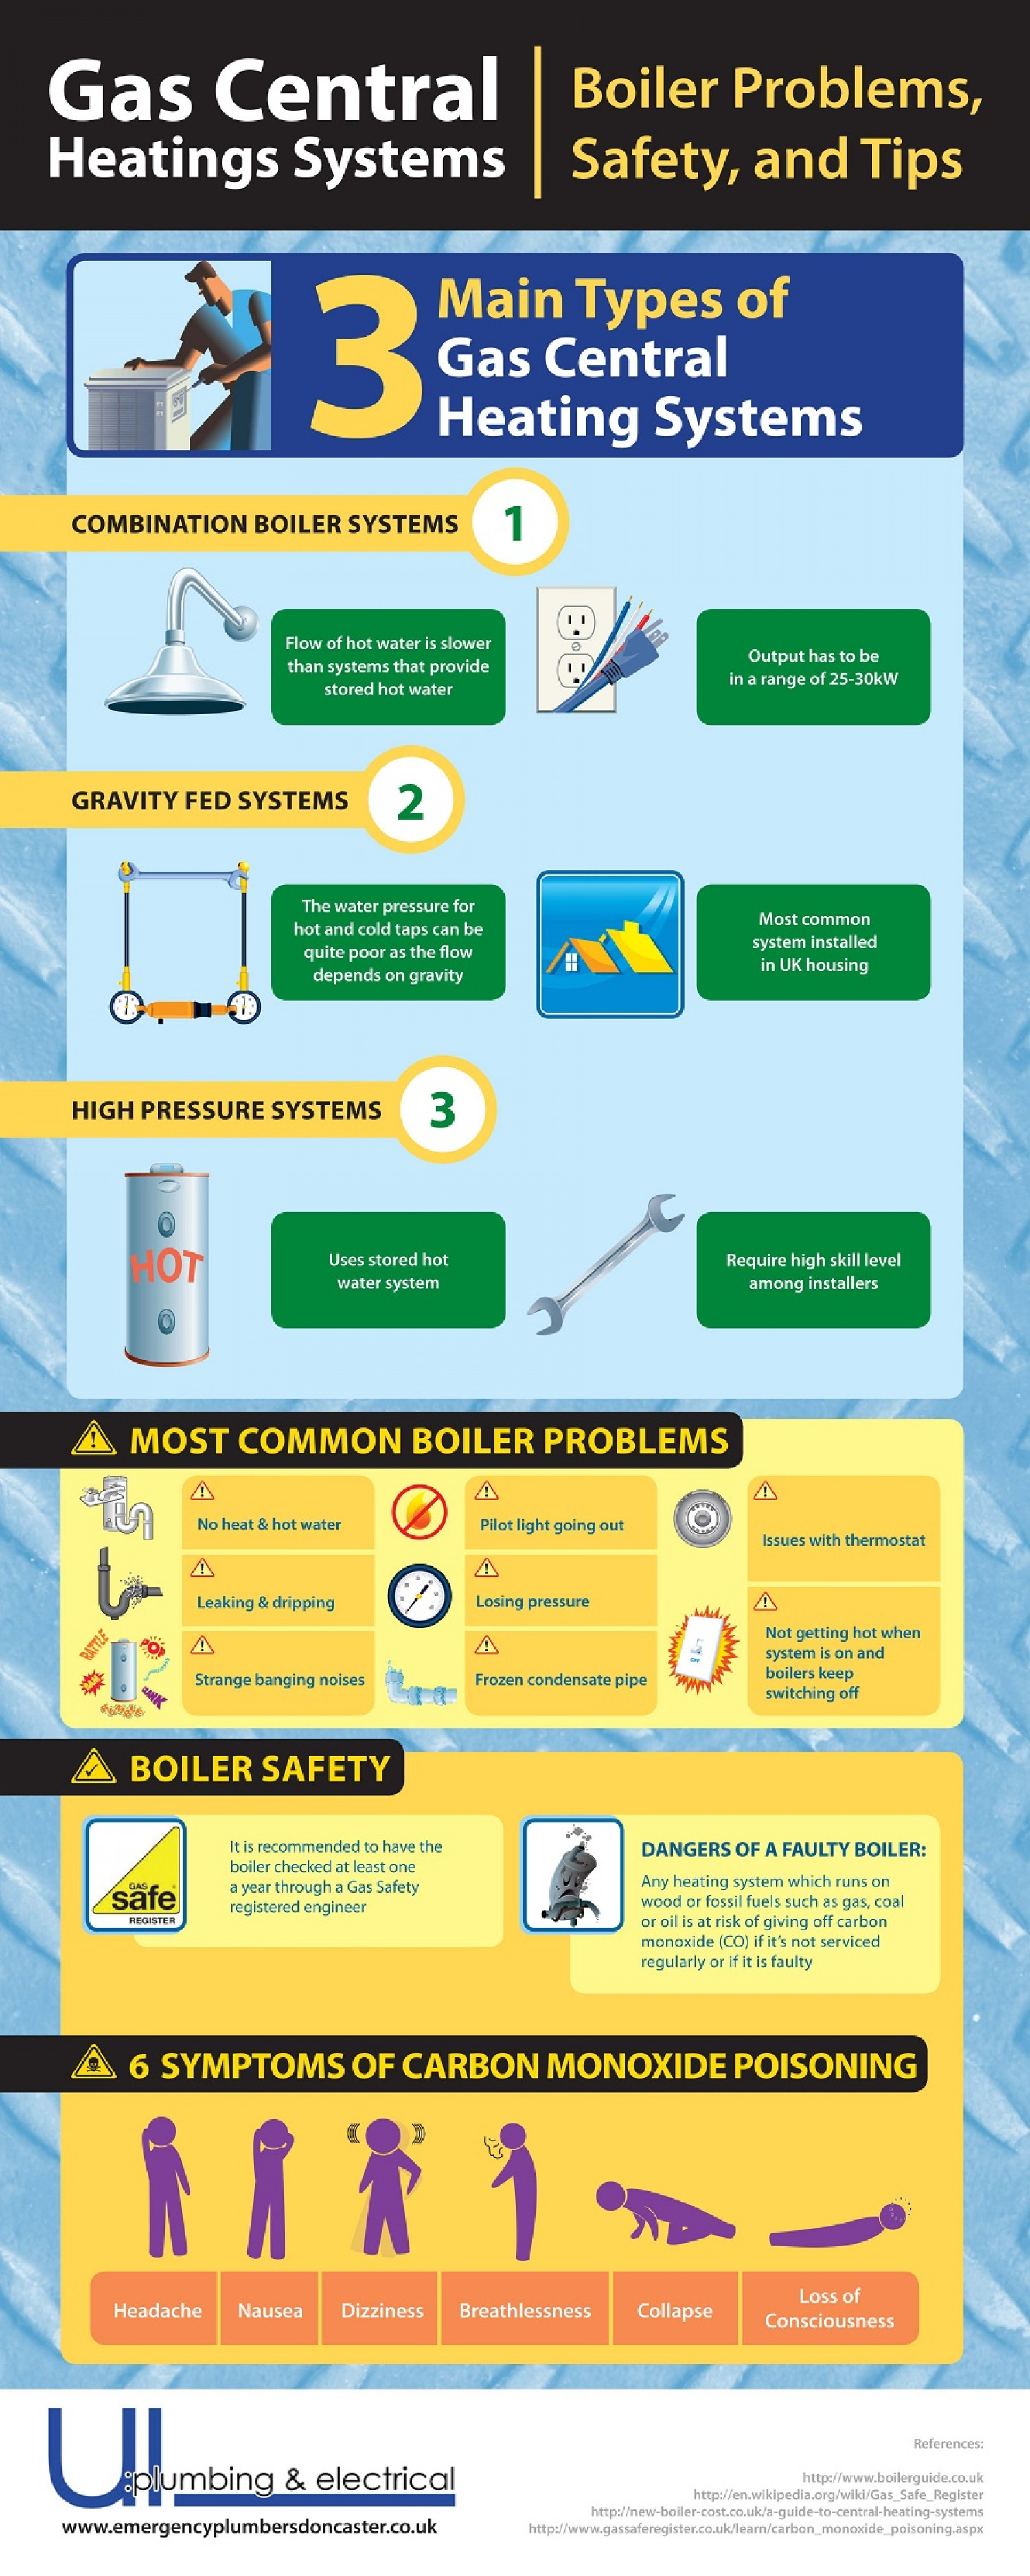 Gas Central Heating Systems Boiler Problems Safety And